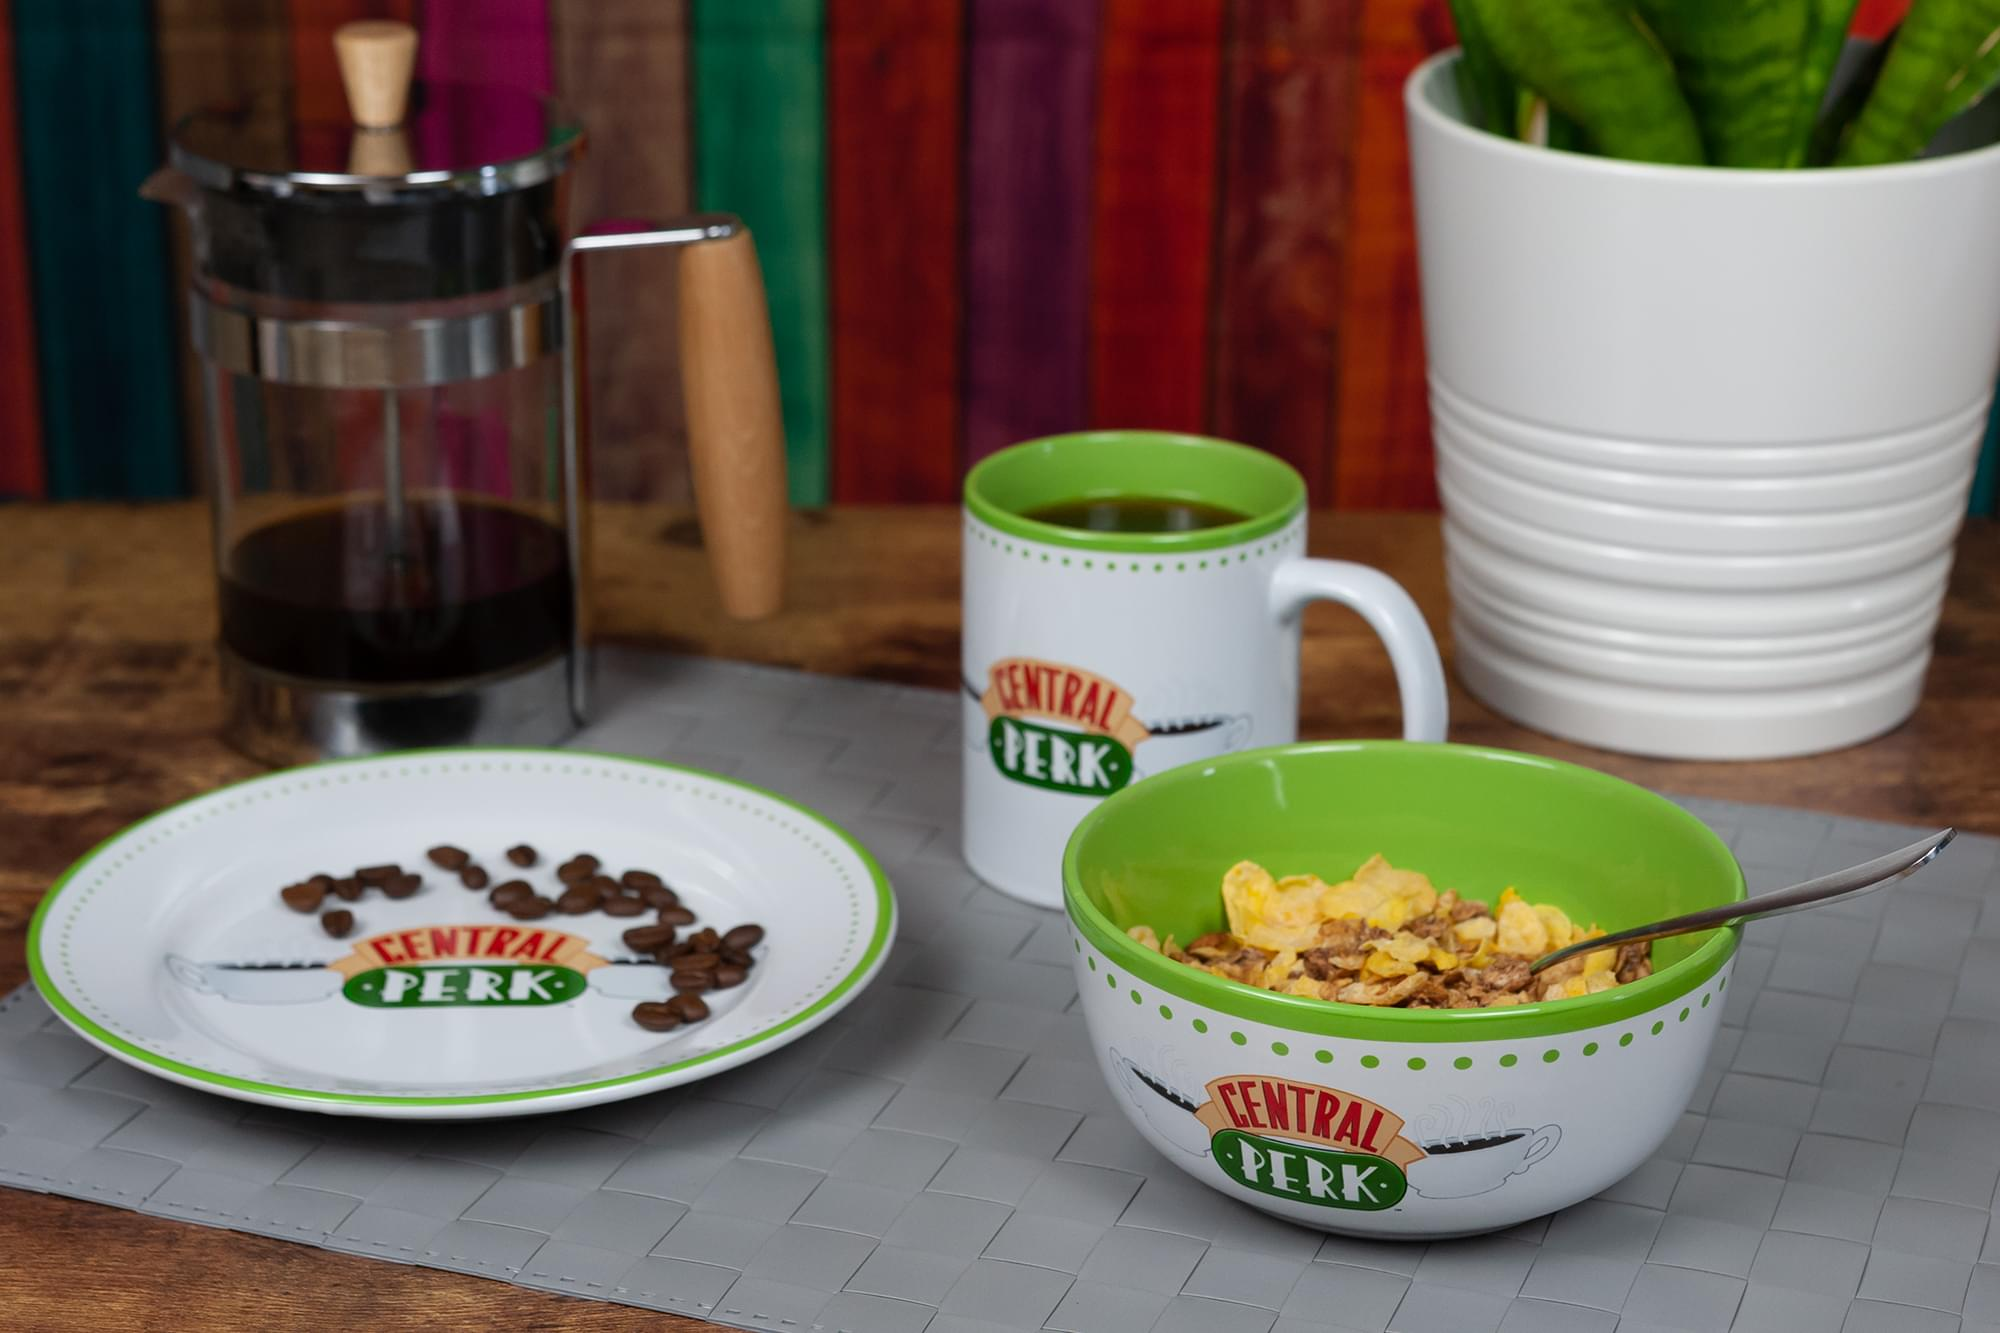 Friends Central Perk Coffee House Dining Set Collection | 3-Piece Dinner Set